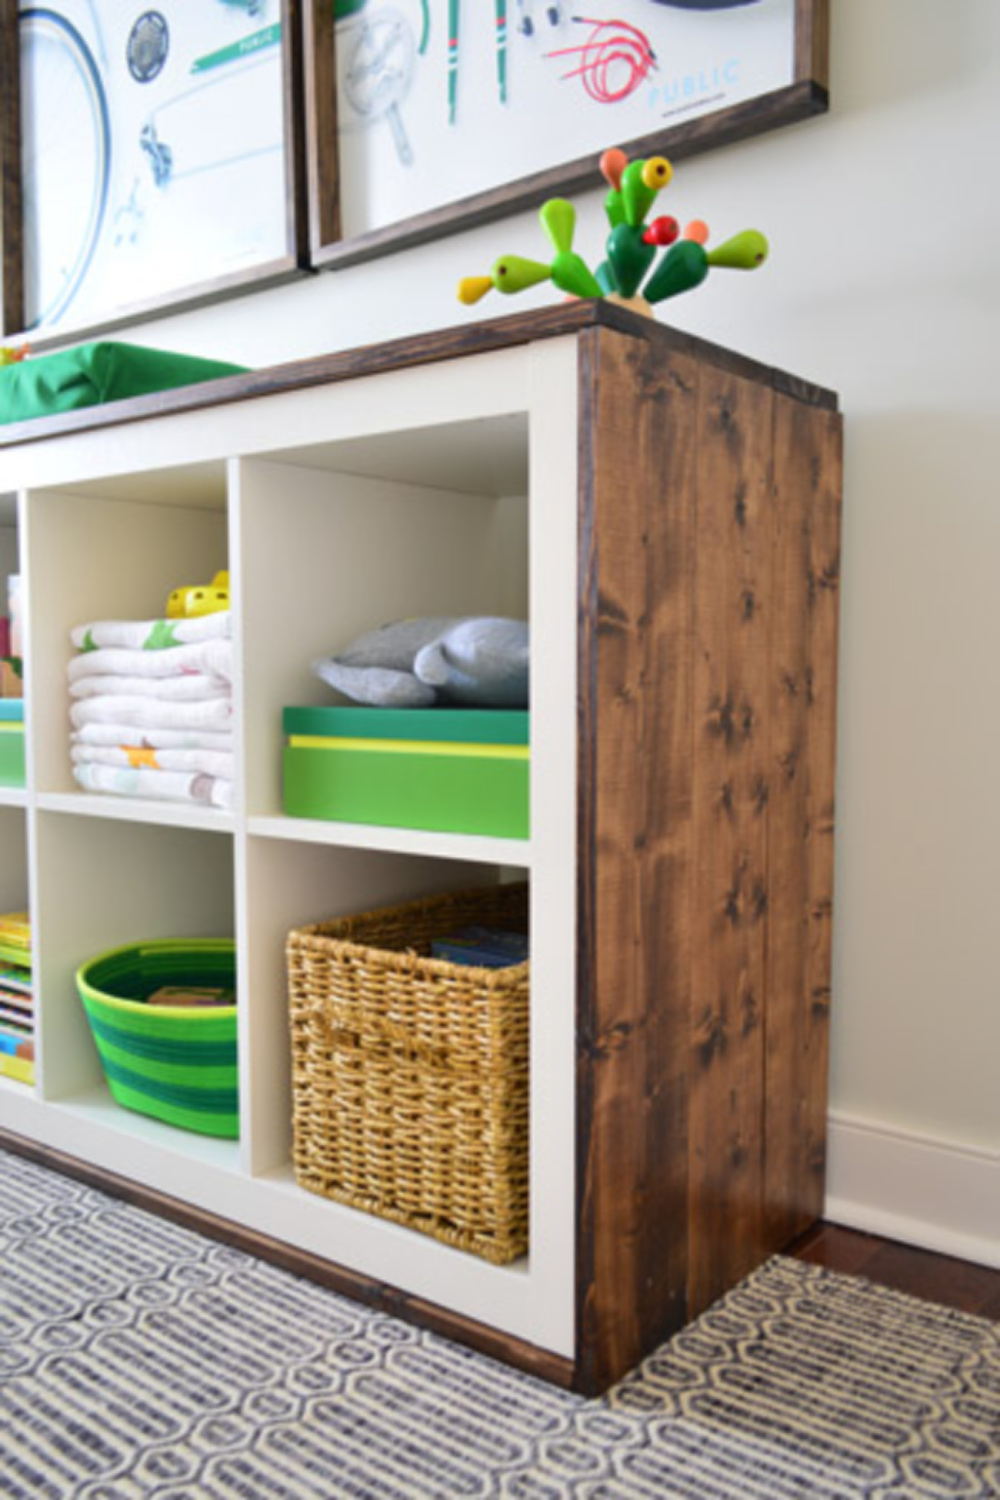 Kallax hack with changing table trimmed in wood - Young House Love. #kallaxhack #ikeahacks #nurserydesign #budgetdesign